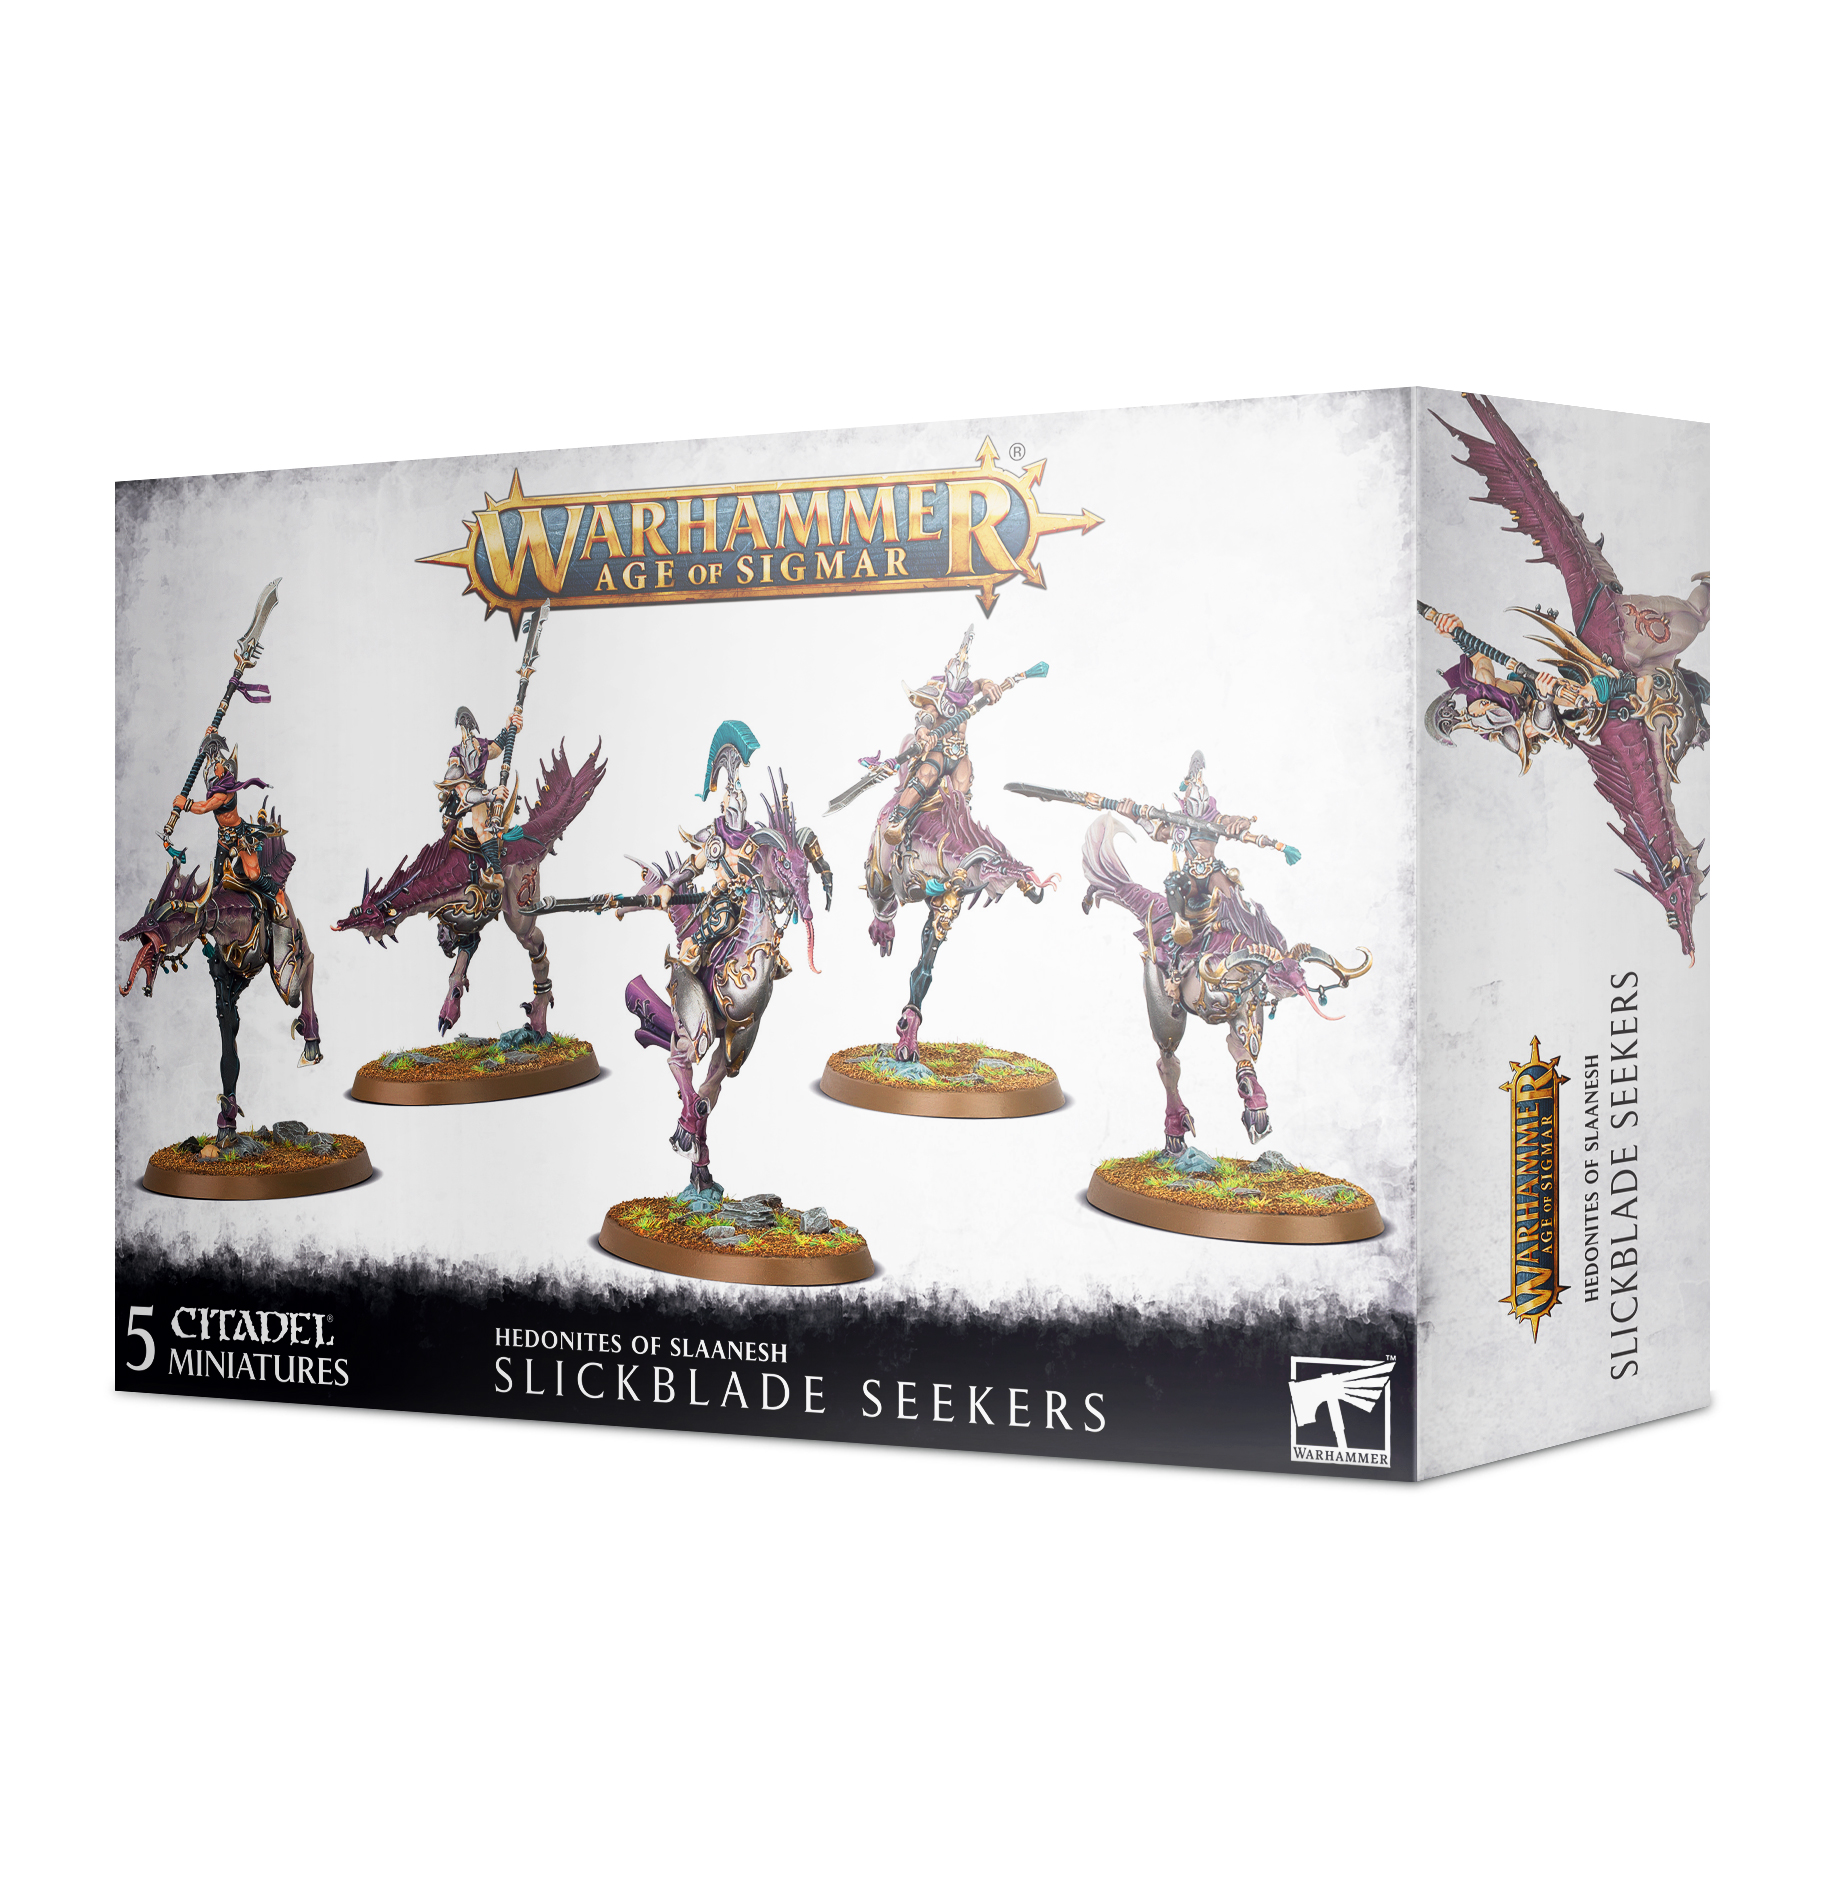 Hedonites of Slaanesh: Slickblade Seekers / Blissbarb Seekers